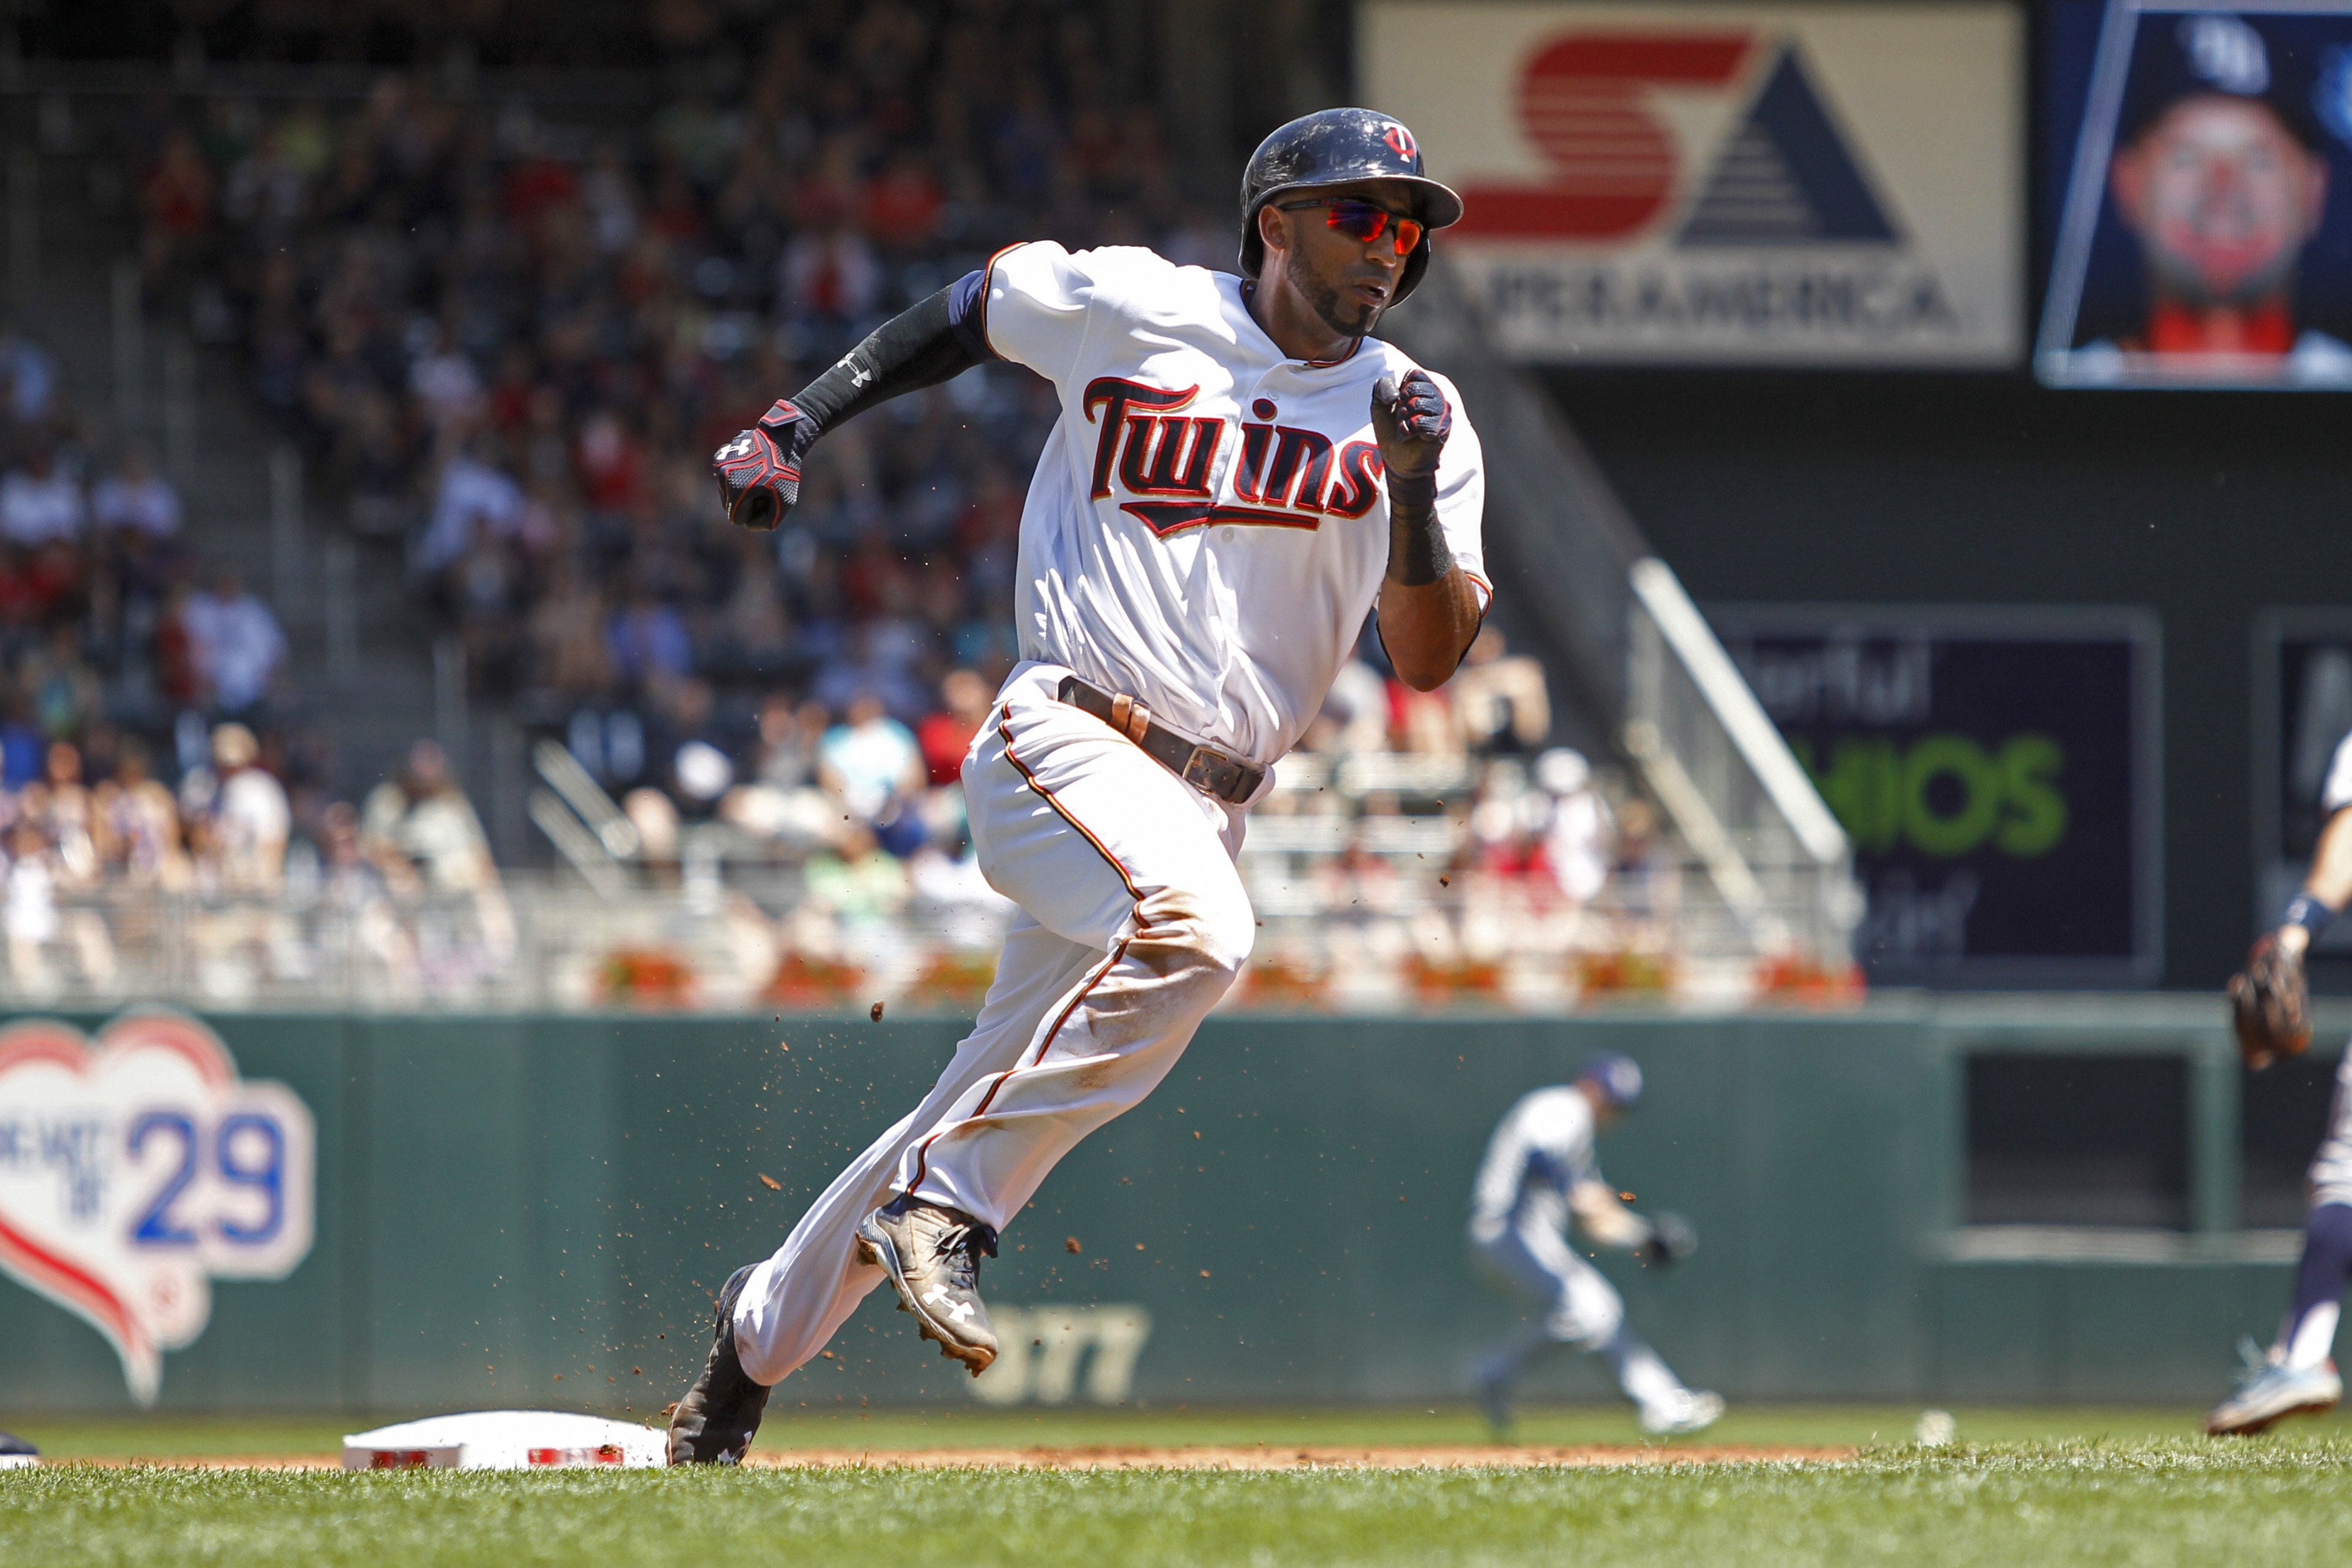 Minnesota Twins' Eduardo Nunez runs on his way to scoring from second base on a single by Joe Mauer against the Tampa Bay Rays in the first inning of a baseball game Sunday, June 5, 2016, in Minneapolis. (AP Photo/Bruce Kluckhohn)